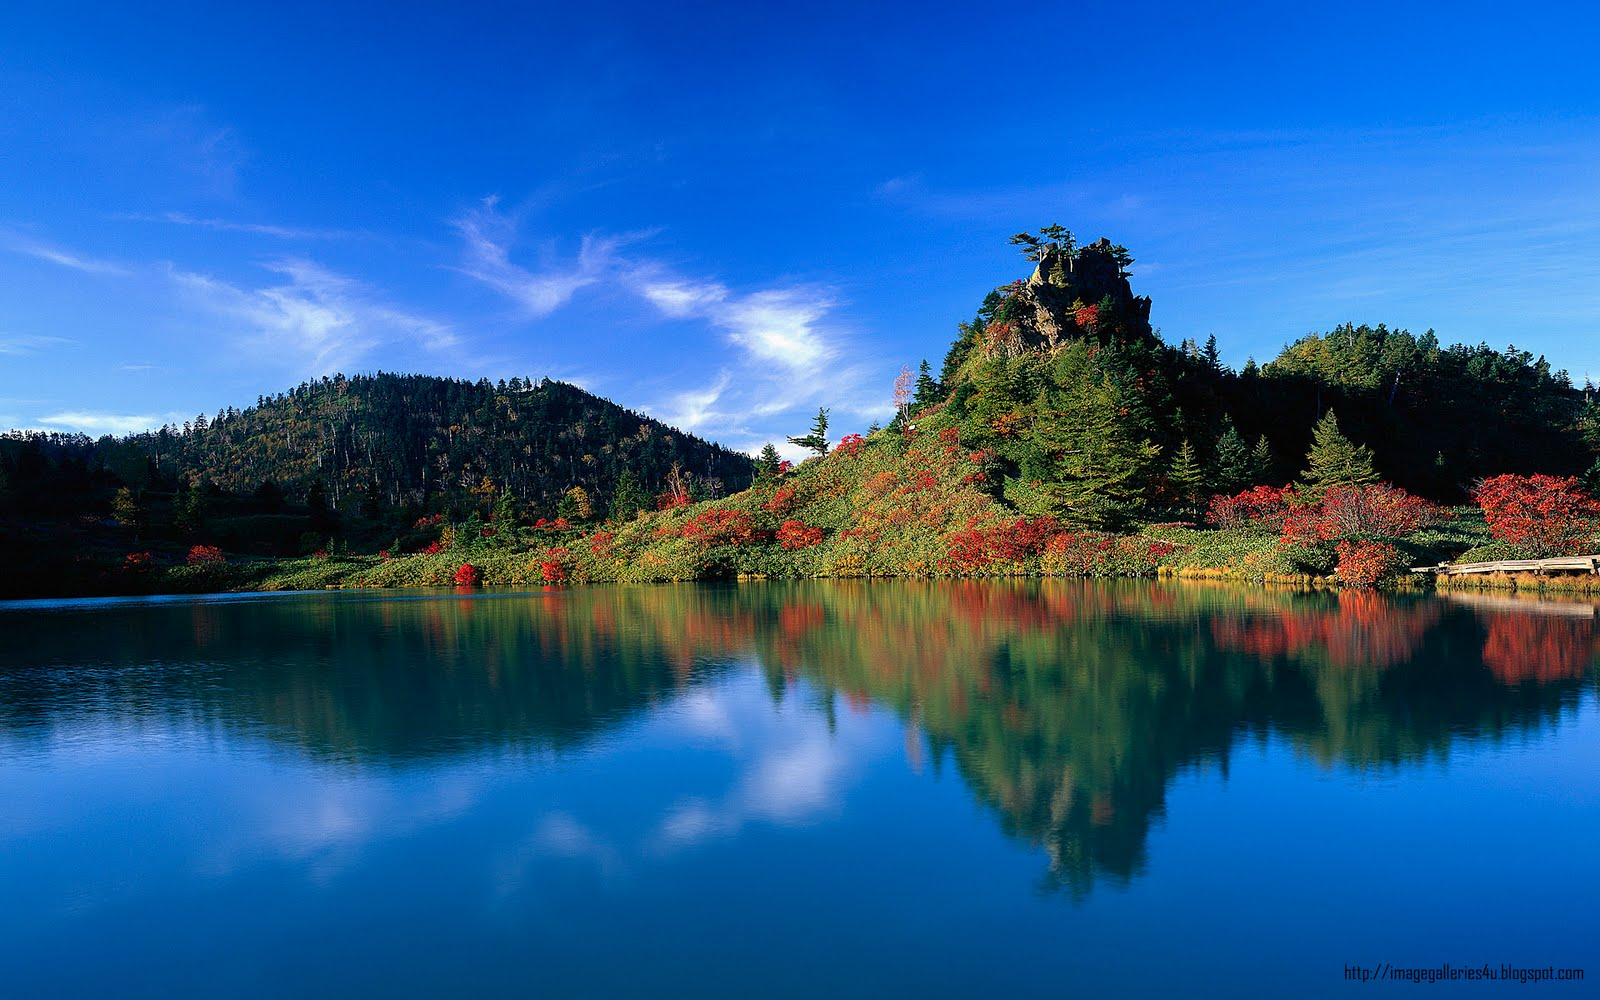 Image Galleries 4u: HD Wallpapers For Windows 7